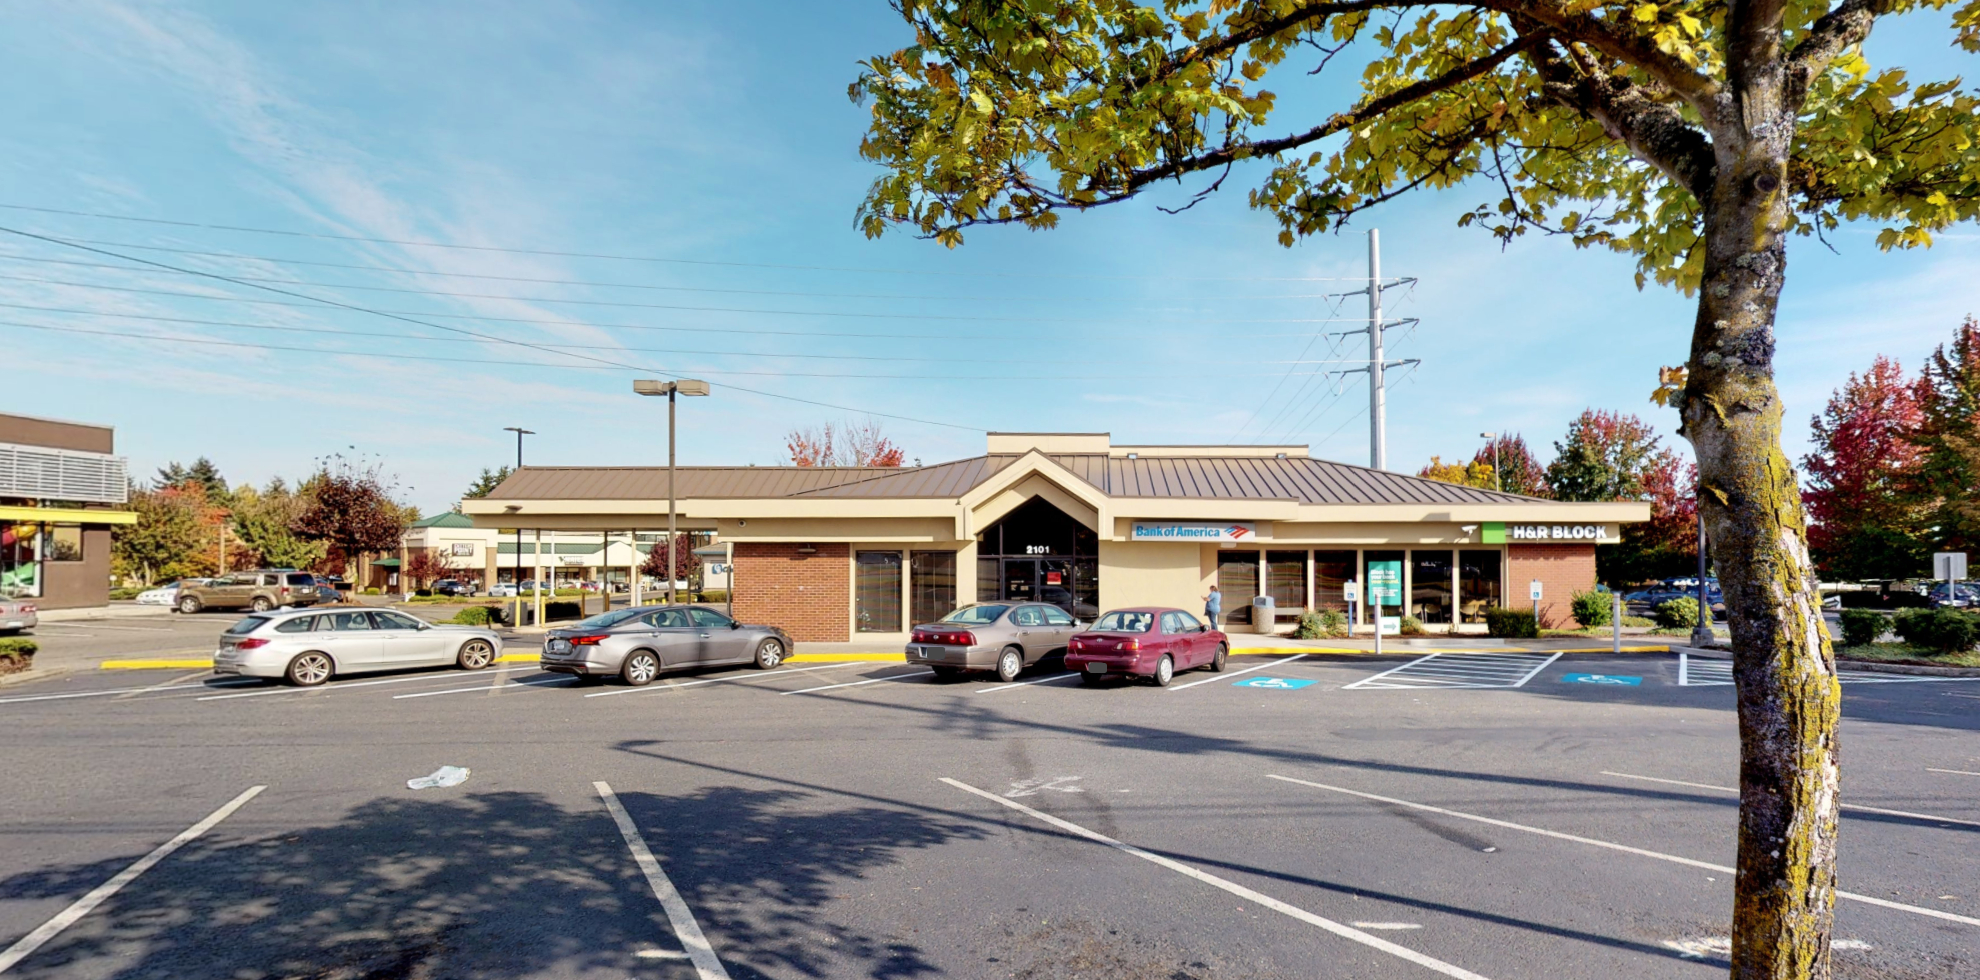 Bank of America financial center with drive-thru ATM | 2101 N Pearl St, Tacoma, WA 98406